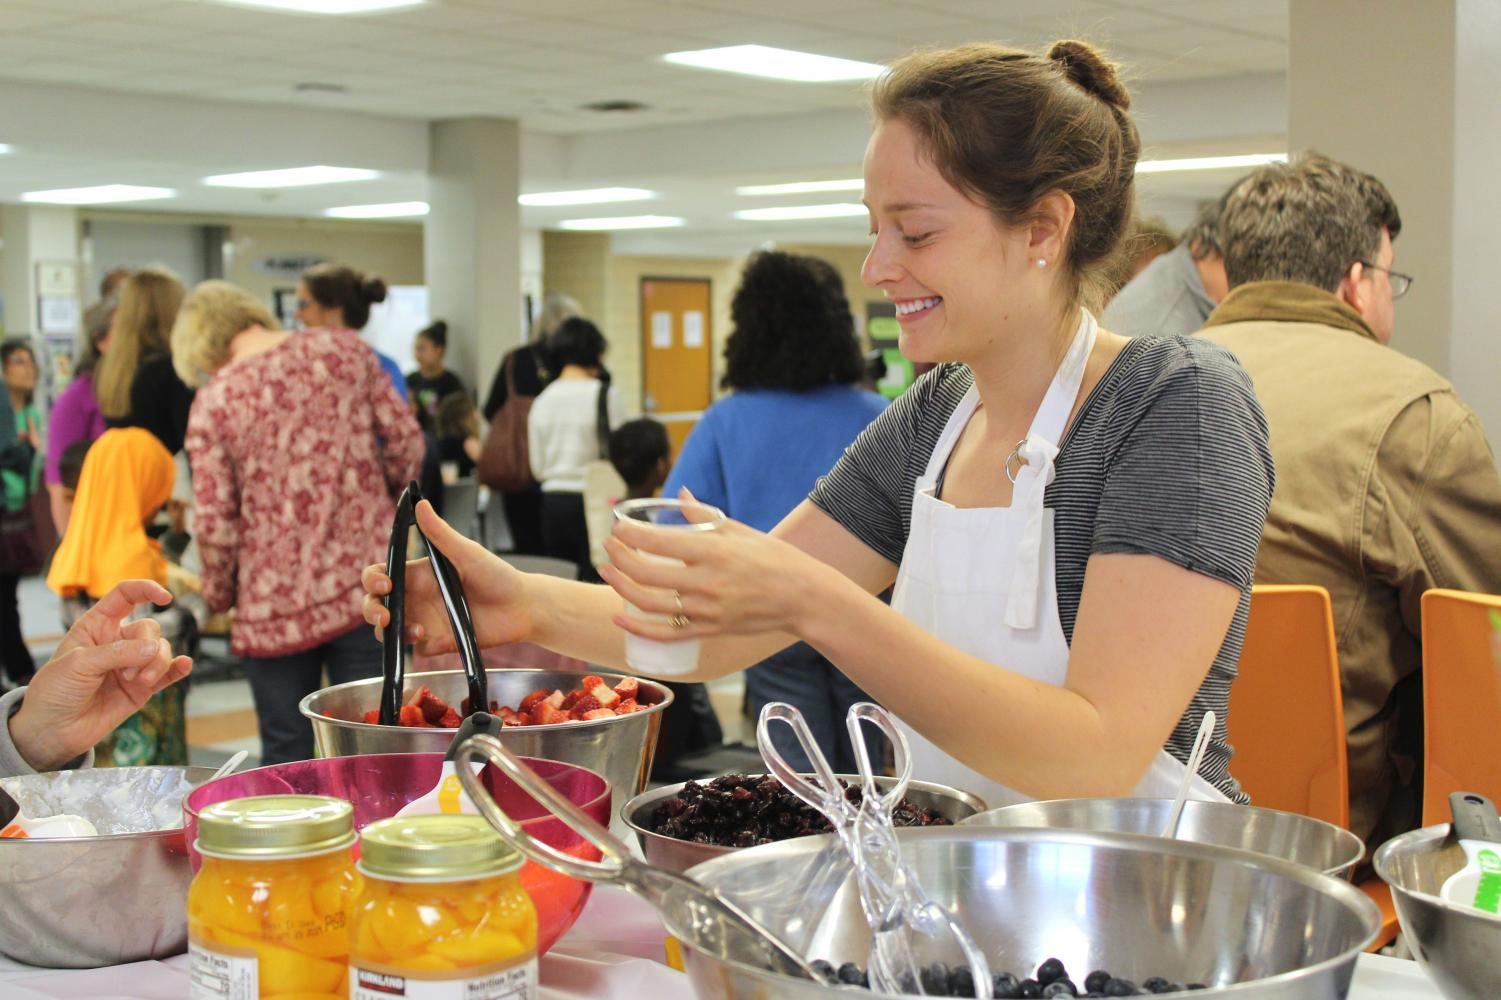 Founder of SEEDS Julie Rapperport serves fruit to students and community members April 24 in the St. Louis Park High School cafeteria.